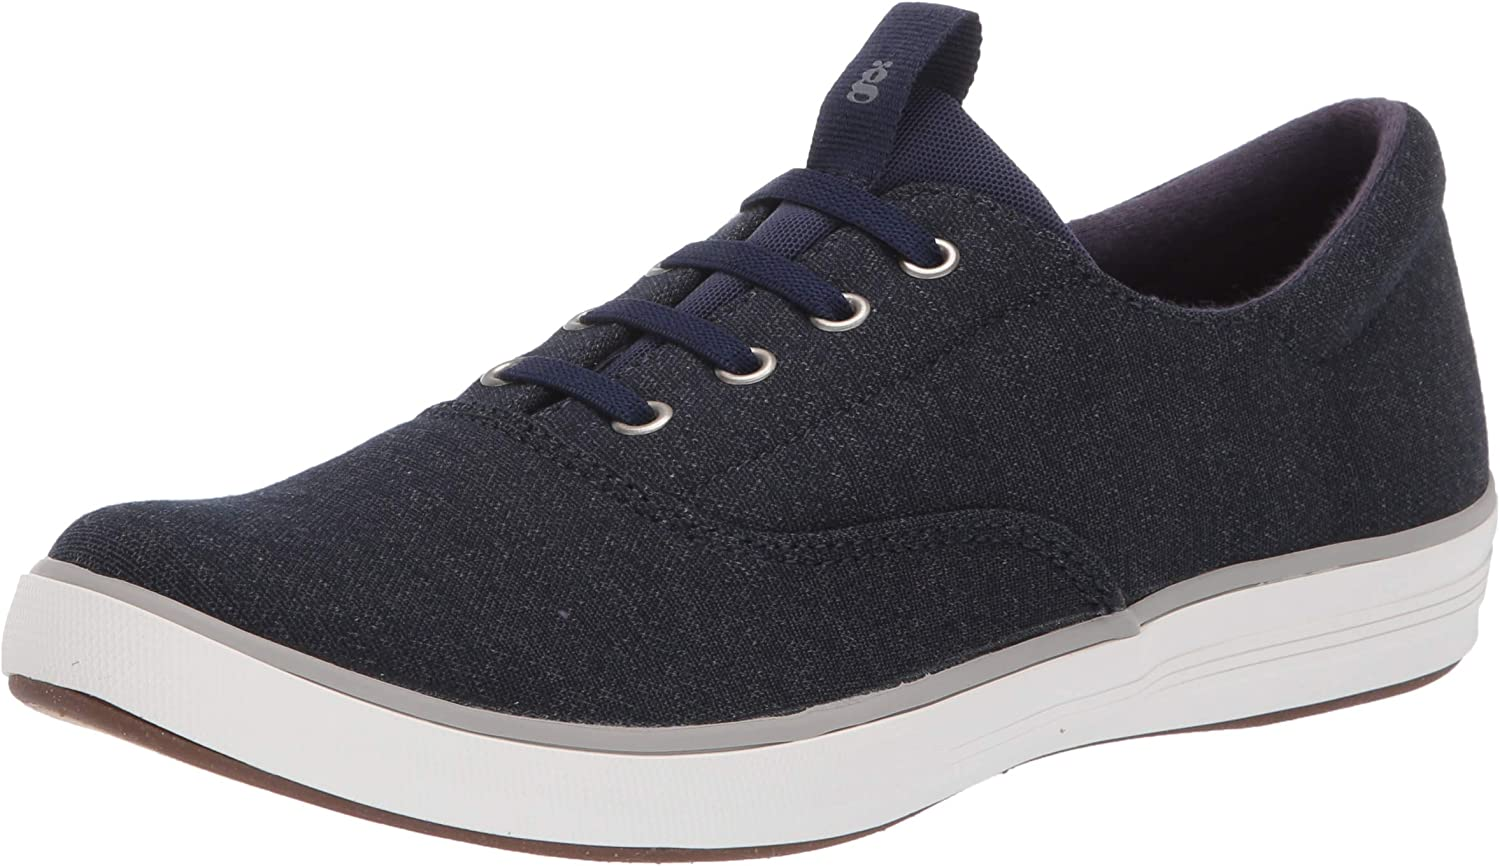 Grasshoppers Super sale period limited Women's Janey Super sale period limited Ii Slip-on Sn Denim Heathered Stretch